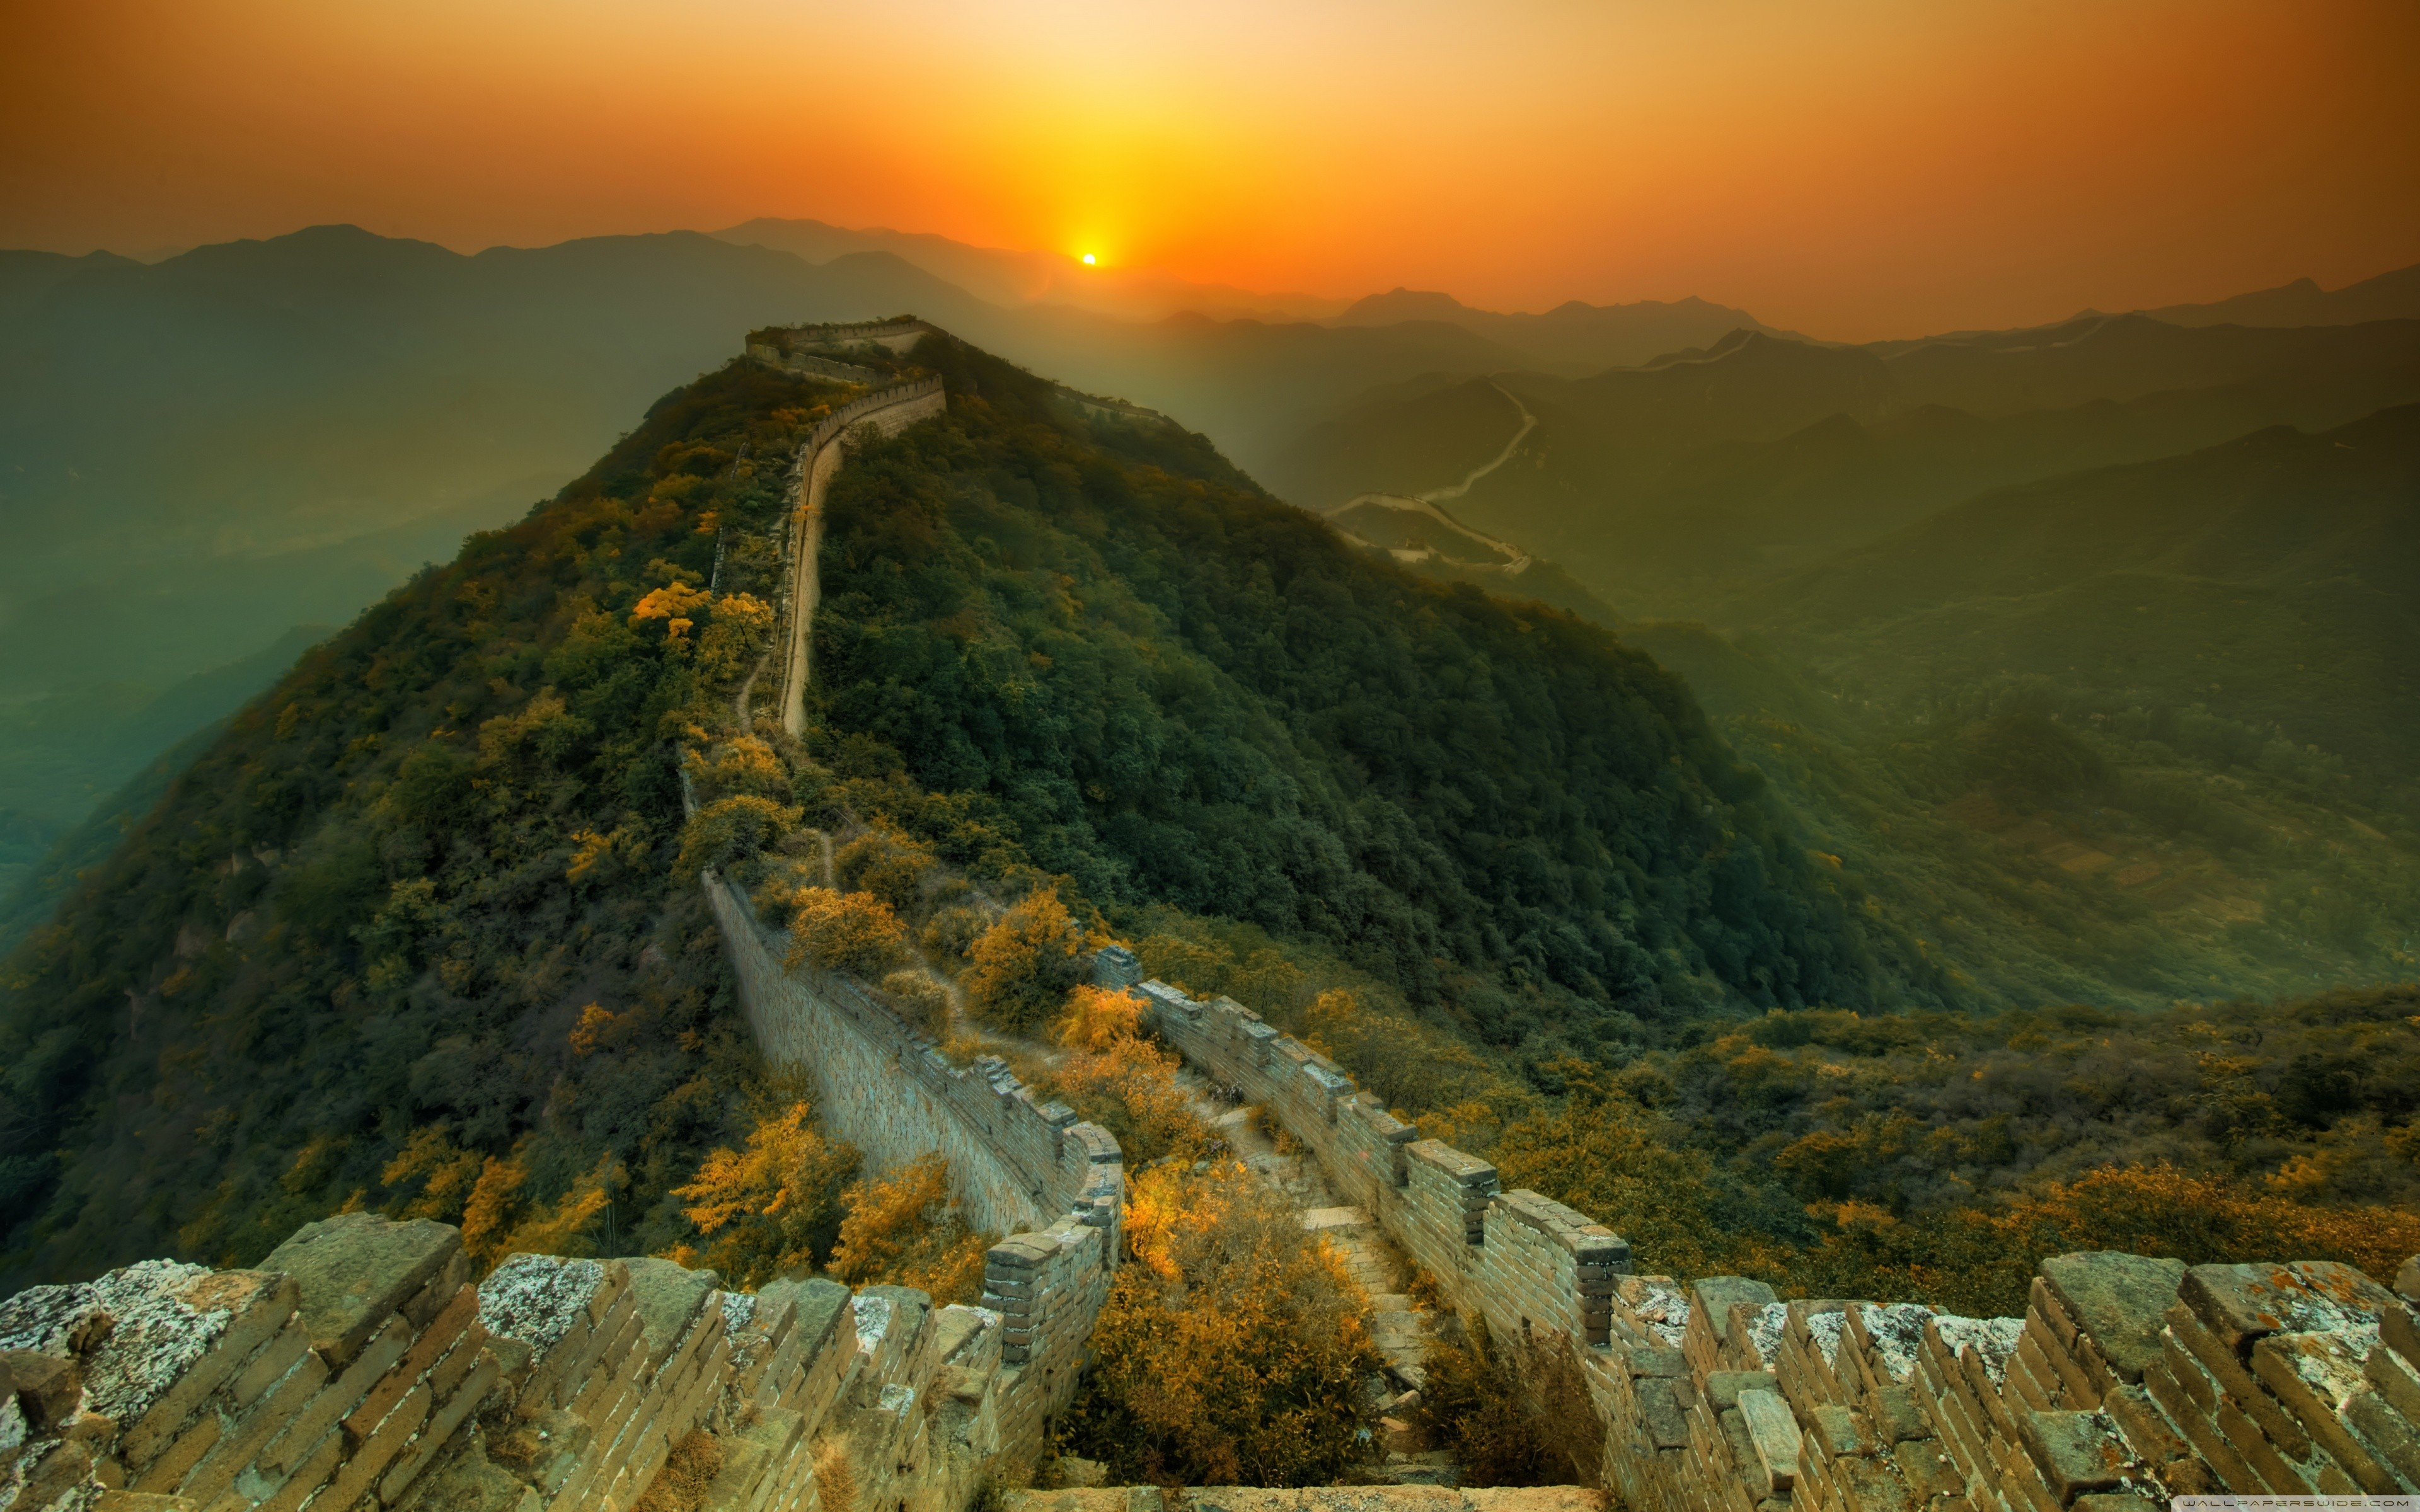 Landscapes sunrise sunset wall China HD Wallpaper